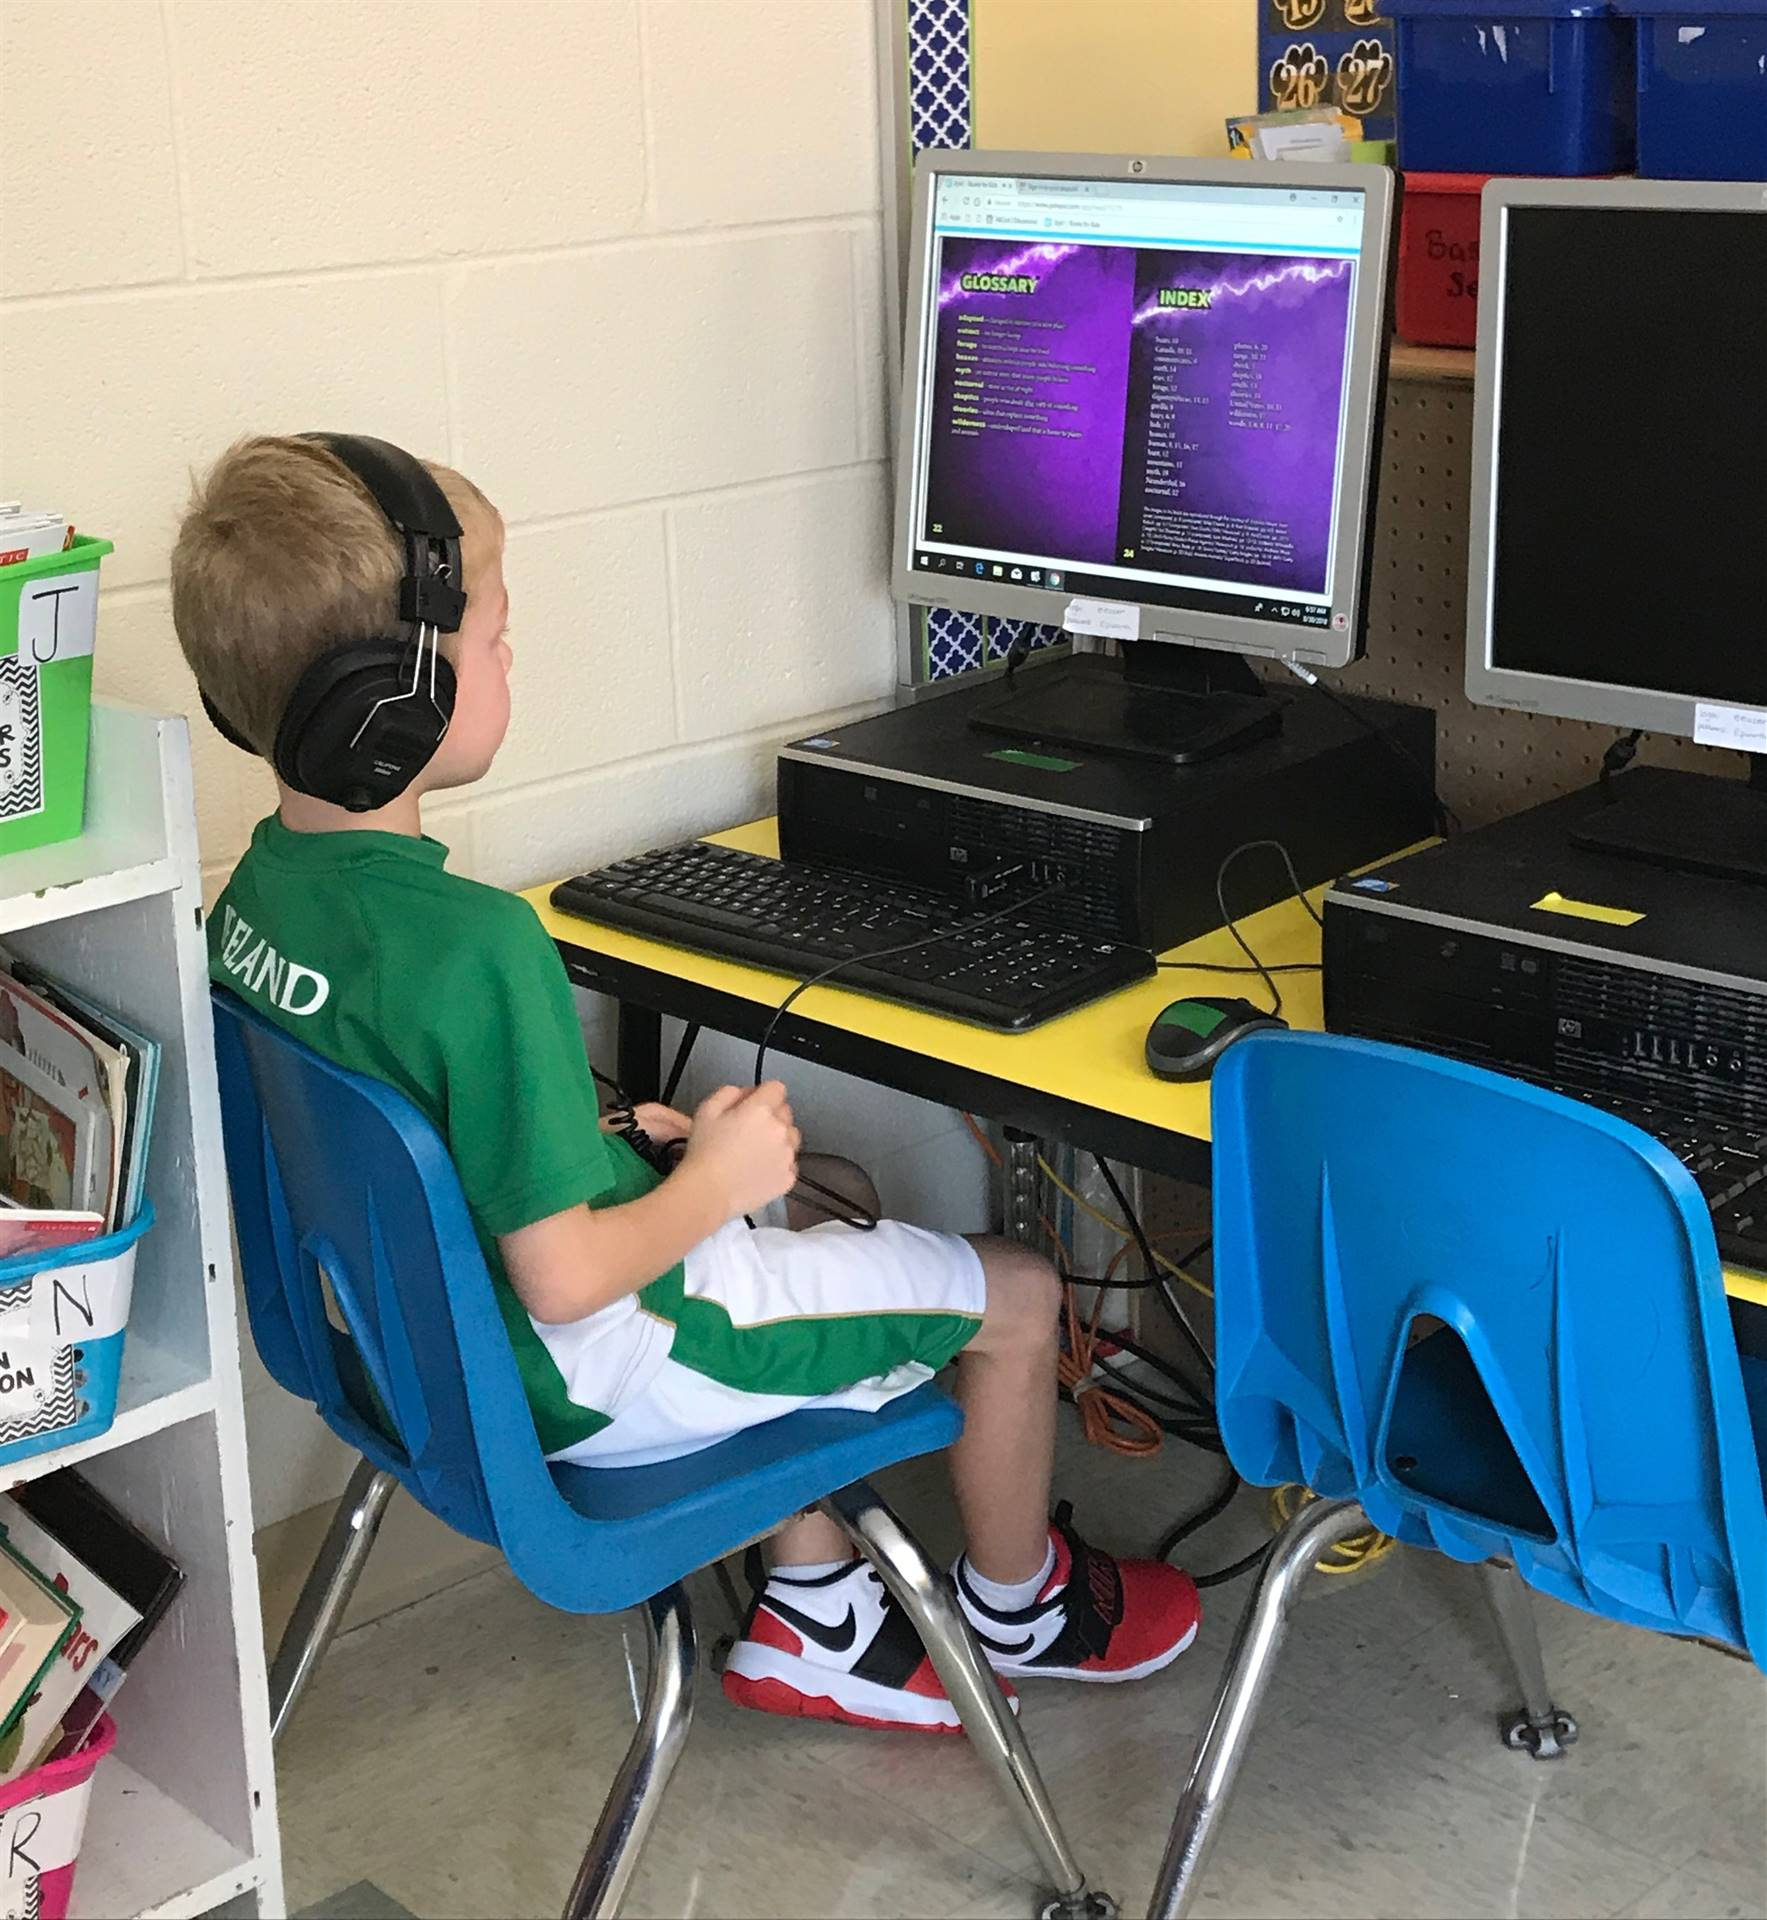 Elementary student working on the computer